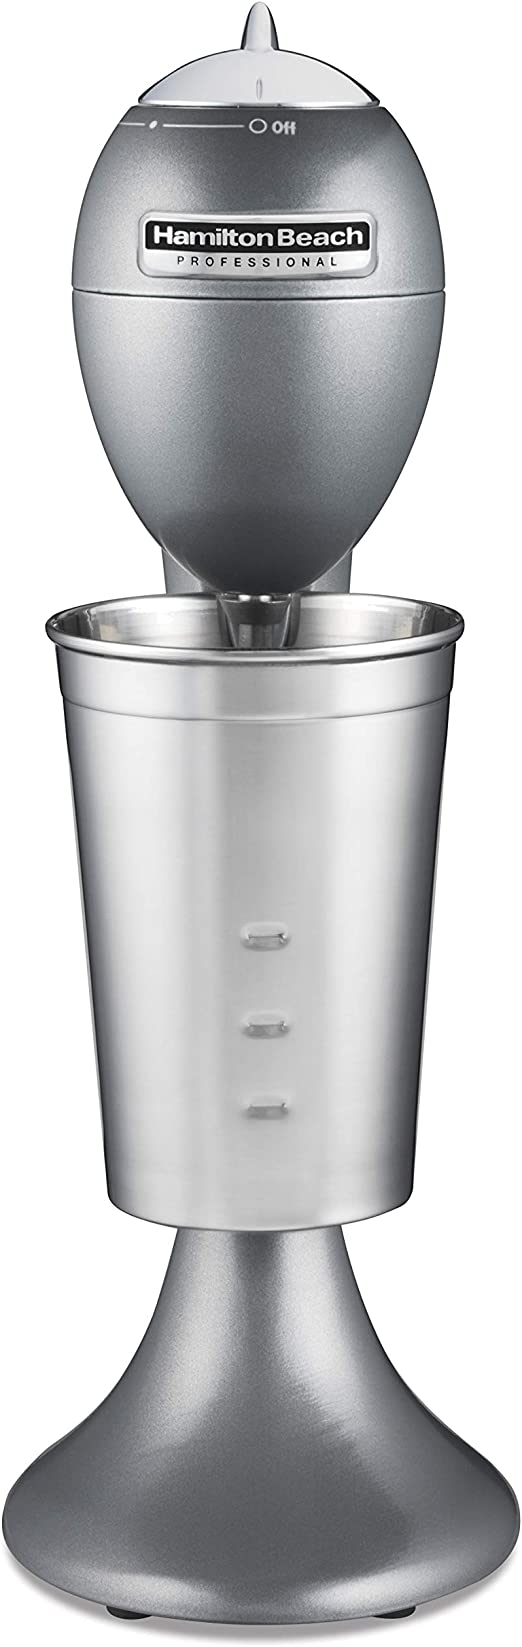 Hamilton Beach 65120 Classic All-Metal Smoothie and Drink Stand Mixer Gray